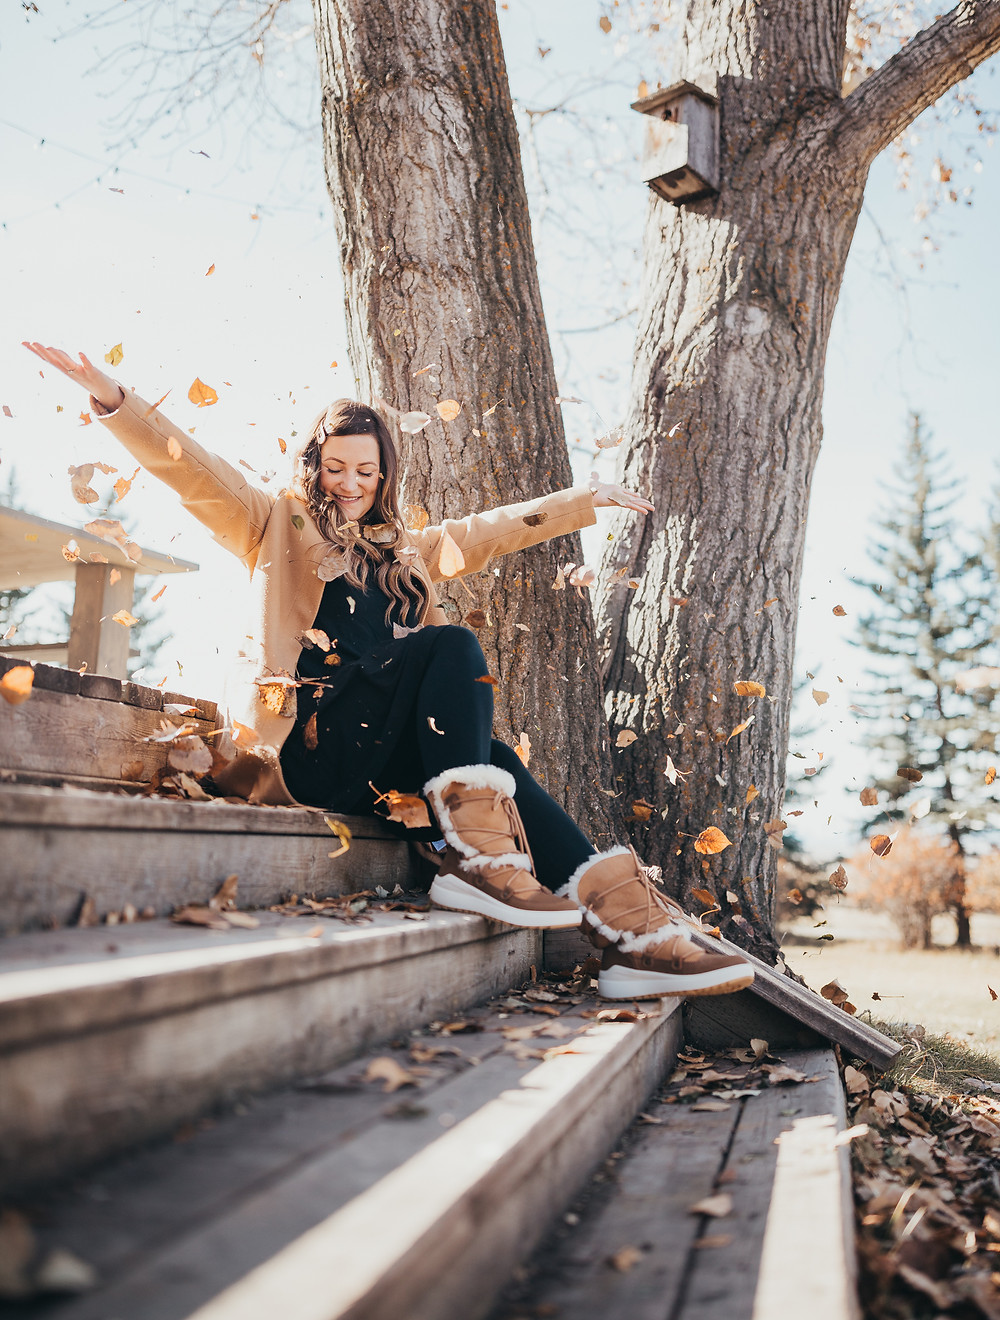 A girl sitting outside on wooden steps tossing leaves up into the air.